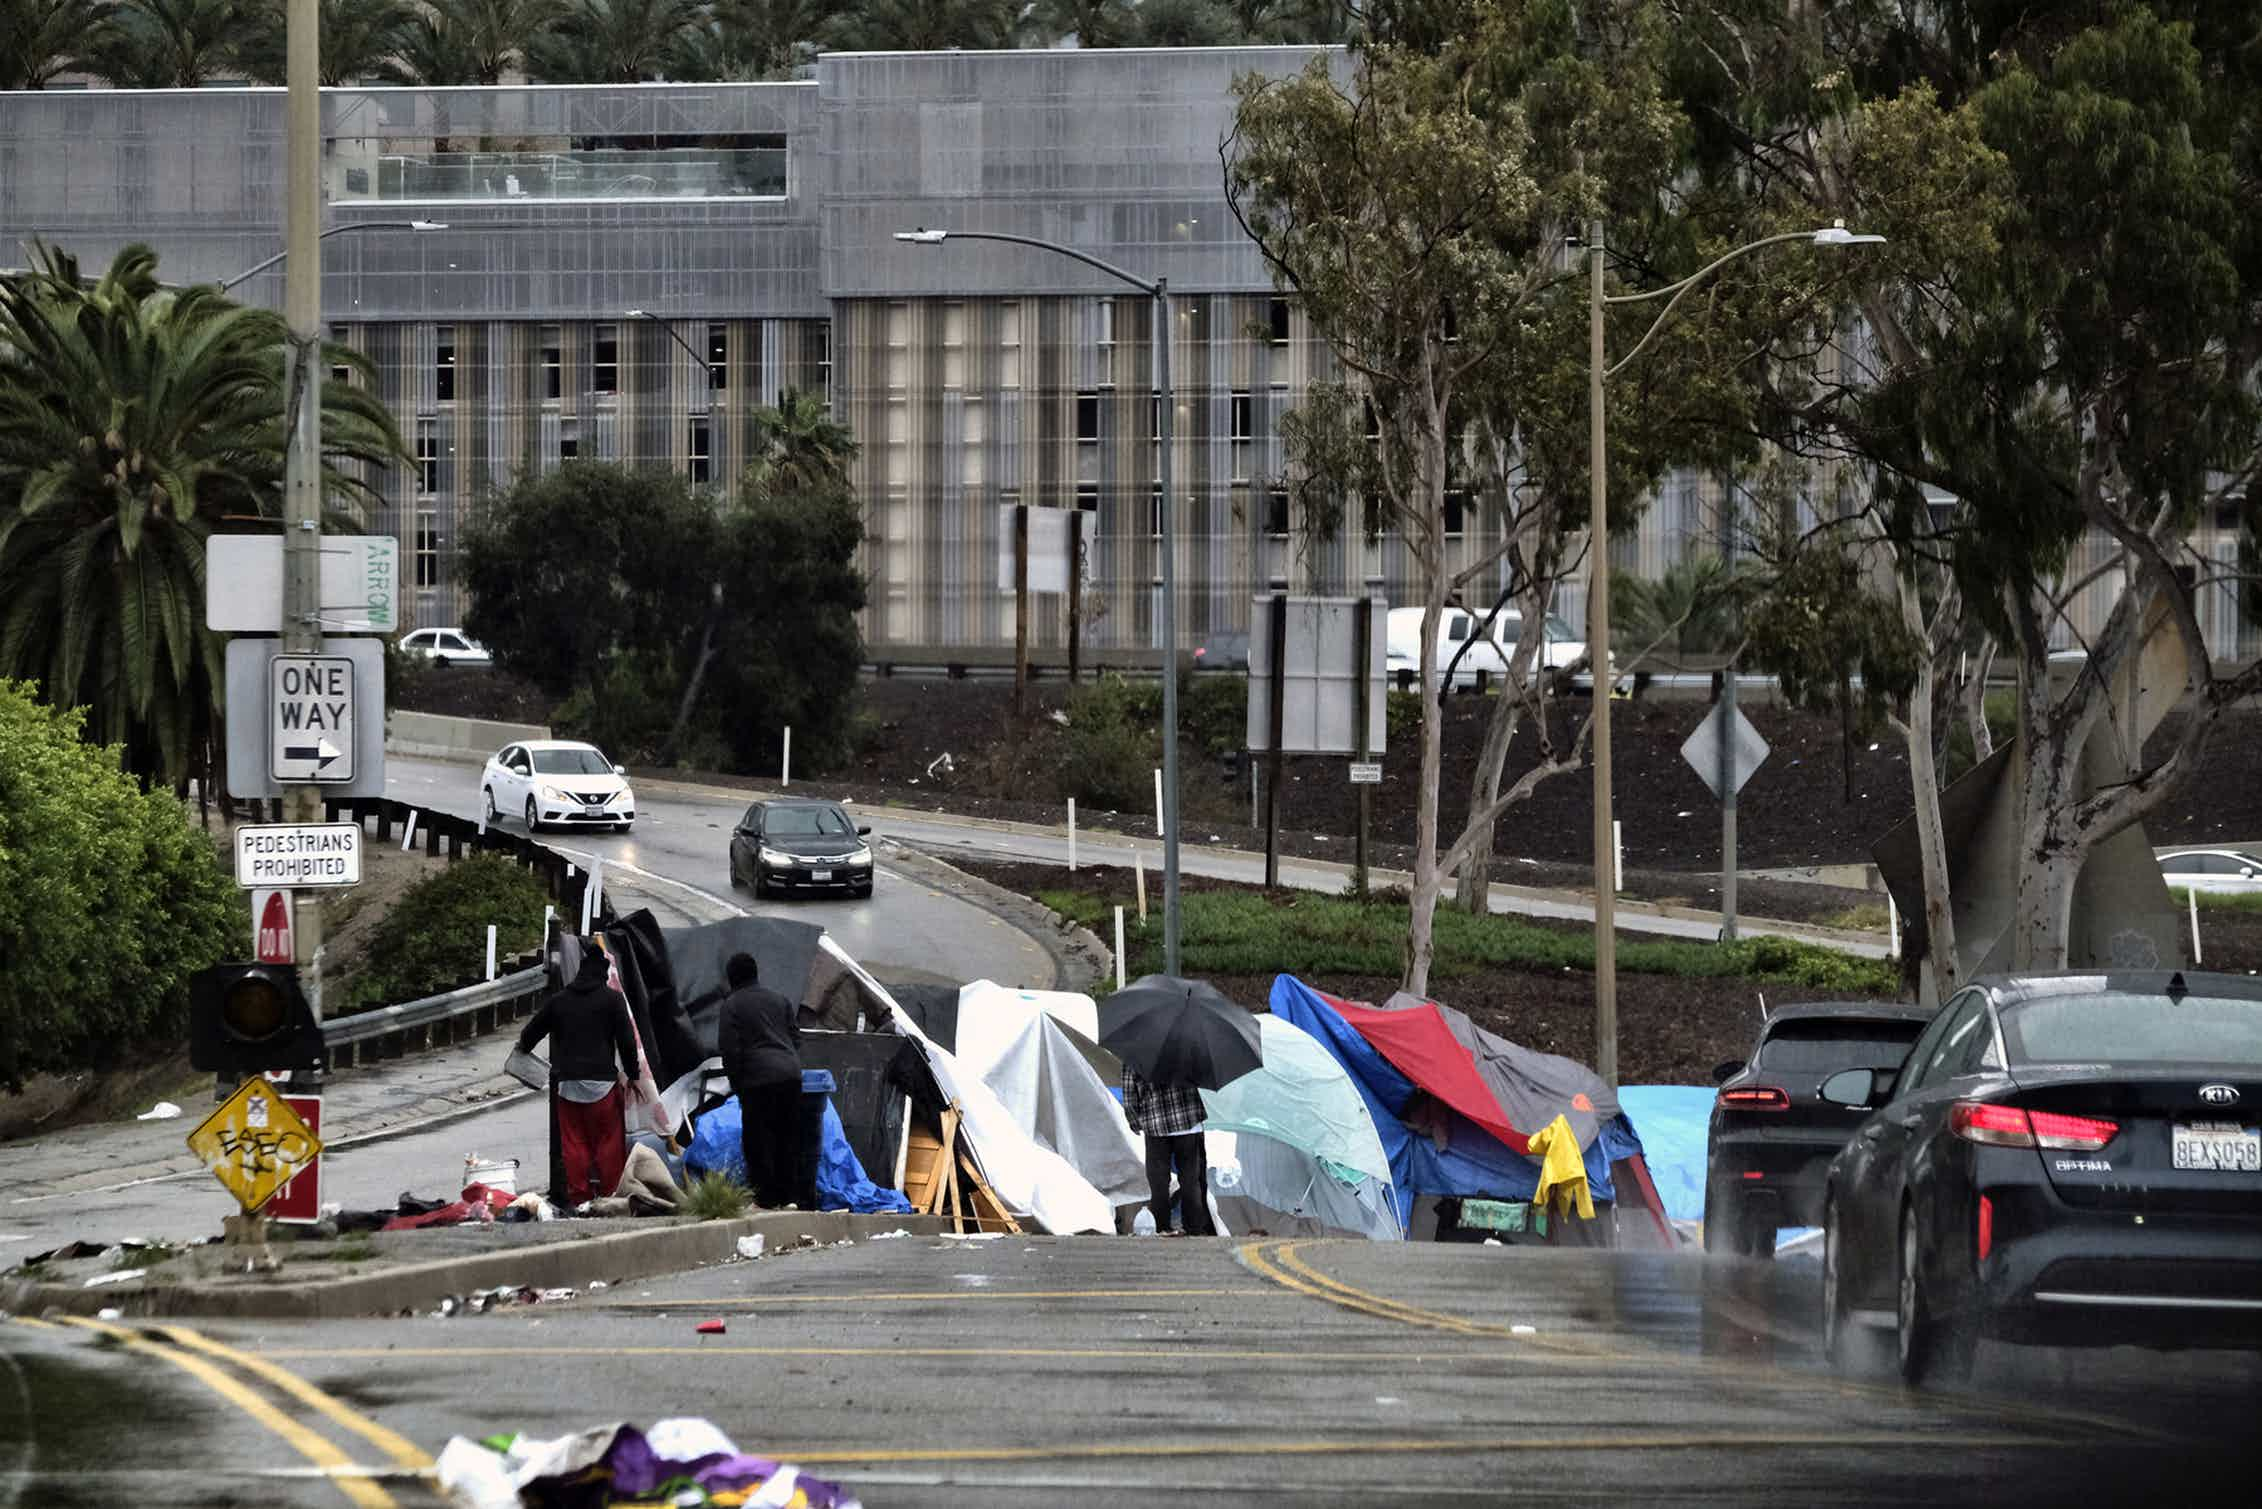 Transgender homeless Americans find few protections in the law